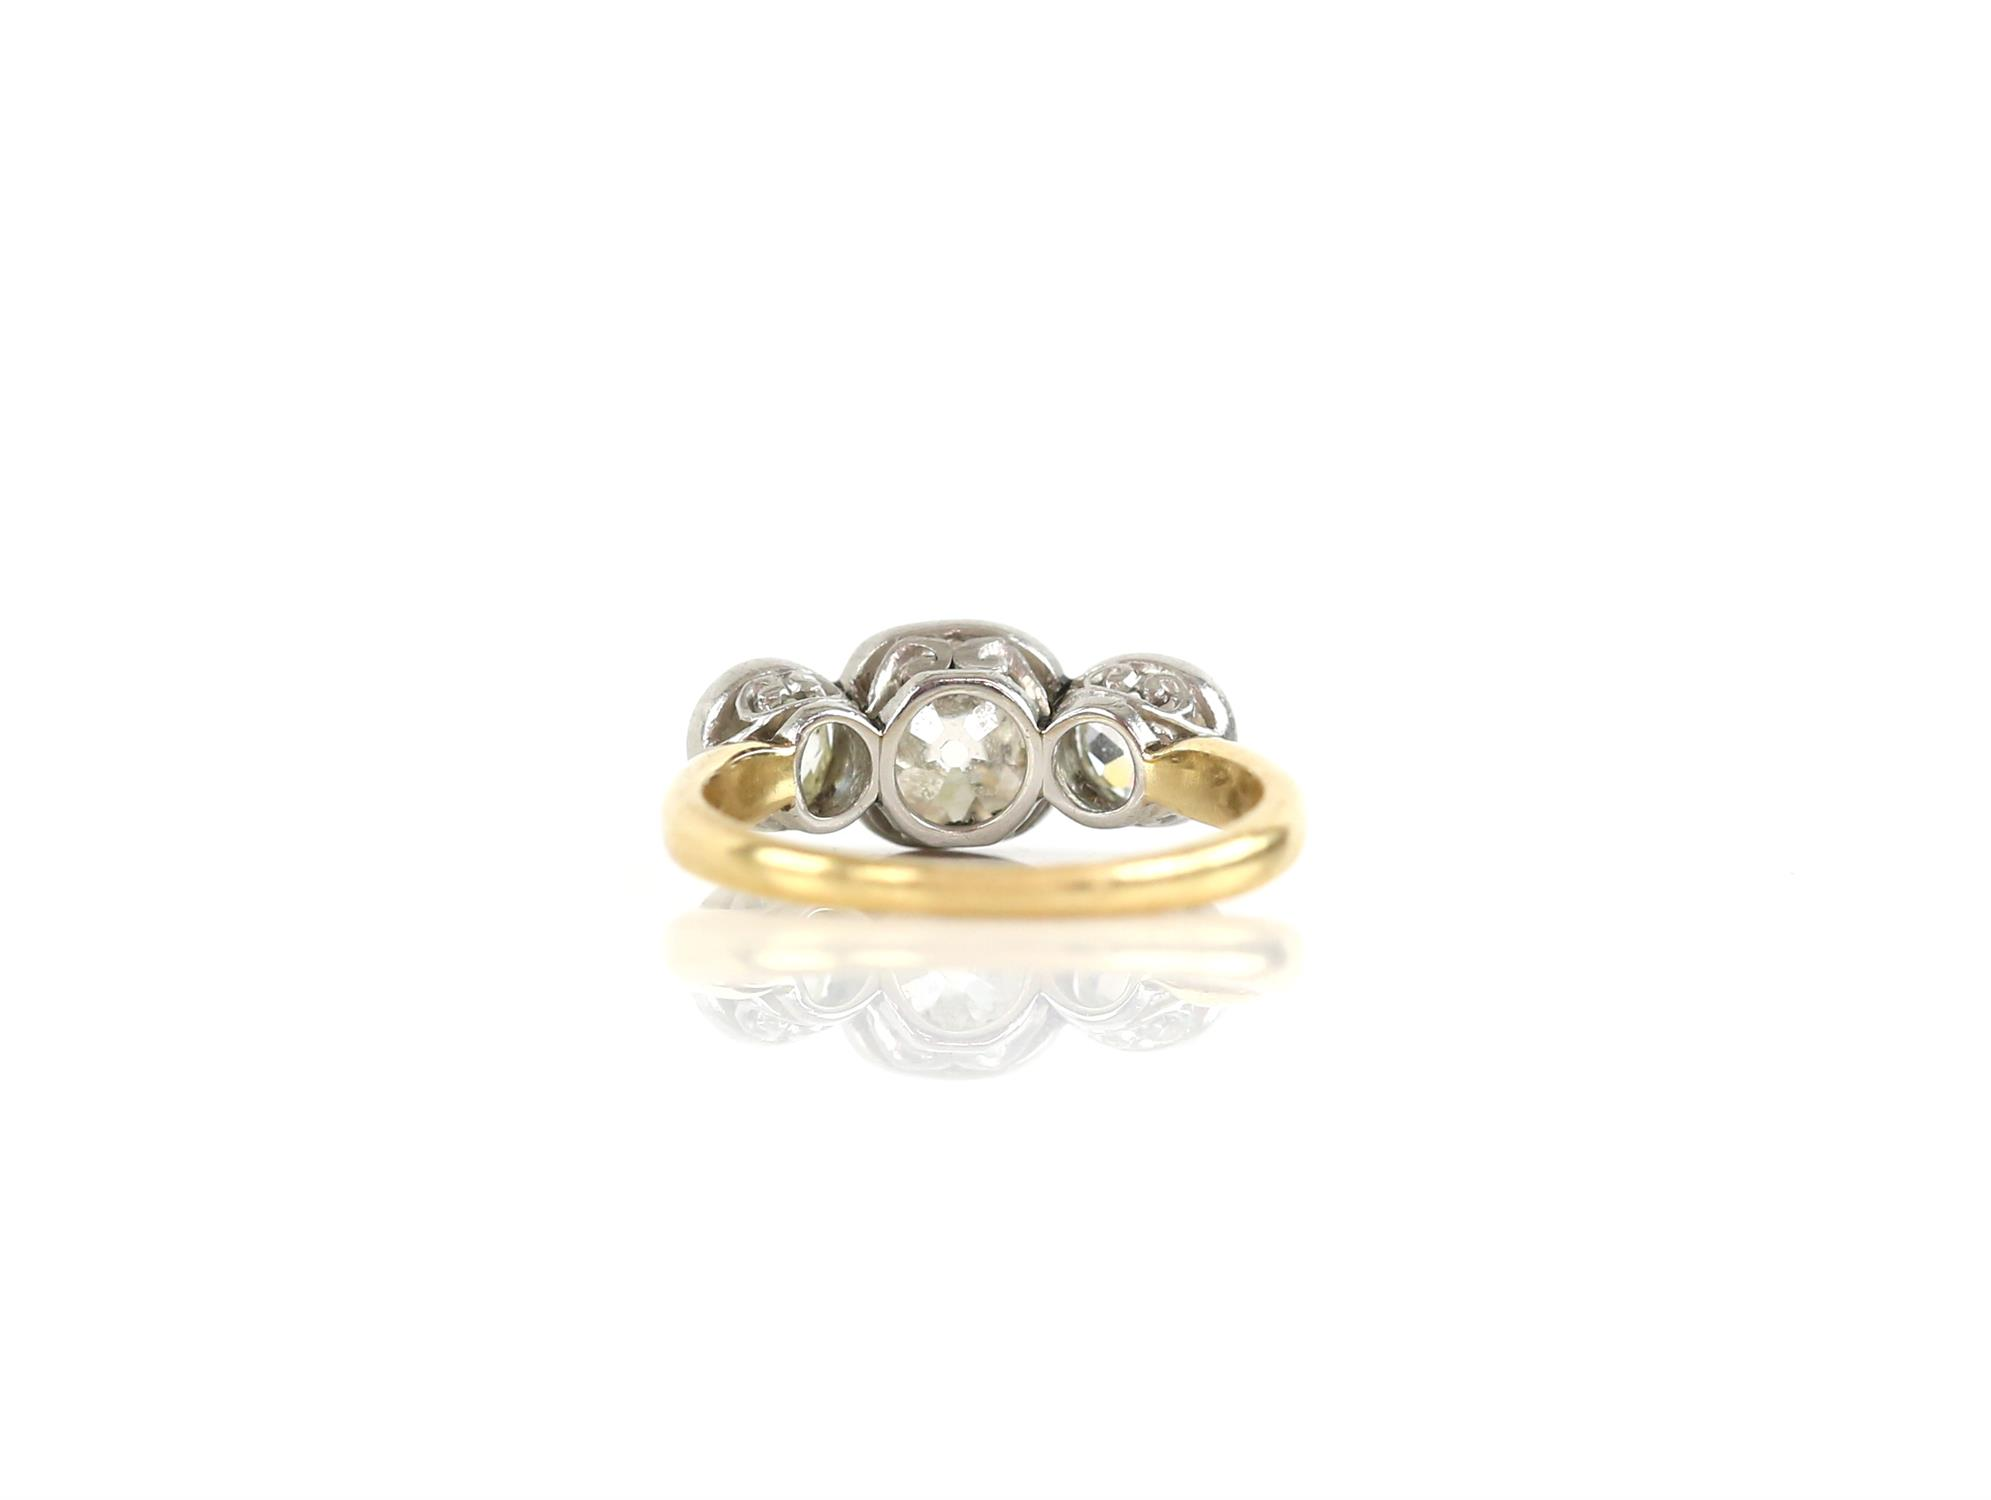 Old mine cut diamond ring, central stone estimated weight 1.20 carats, the side stone have an - Image 2 of 3